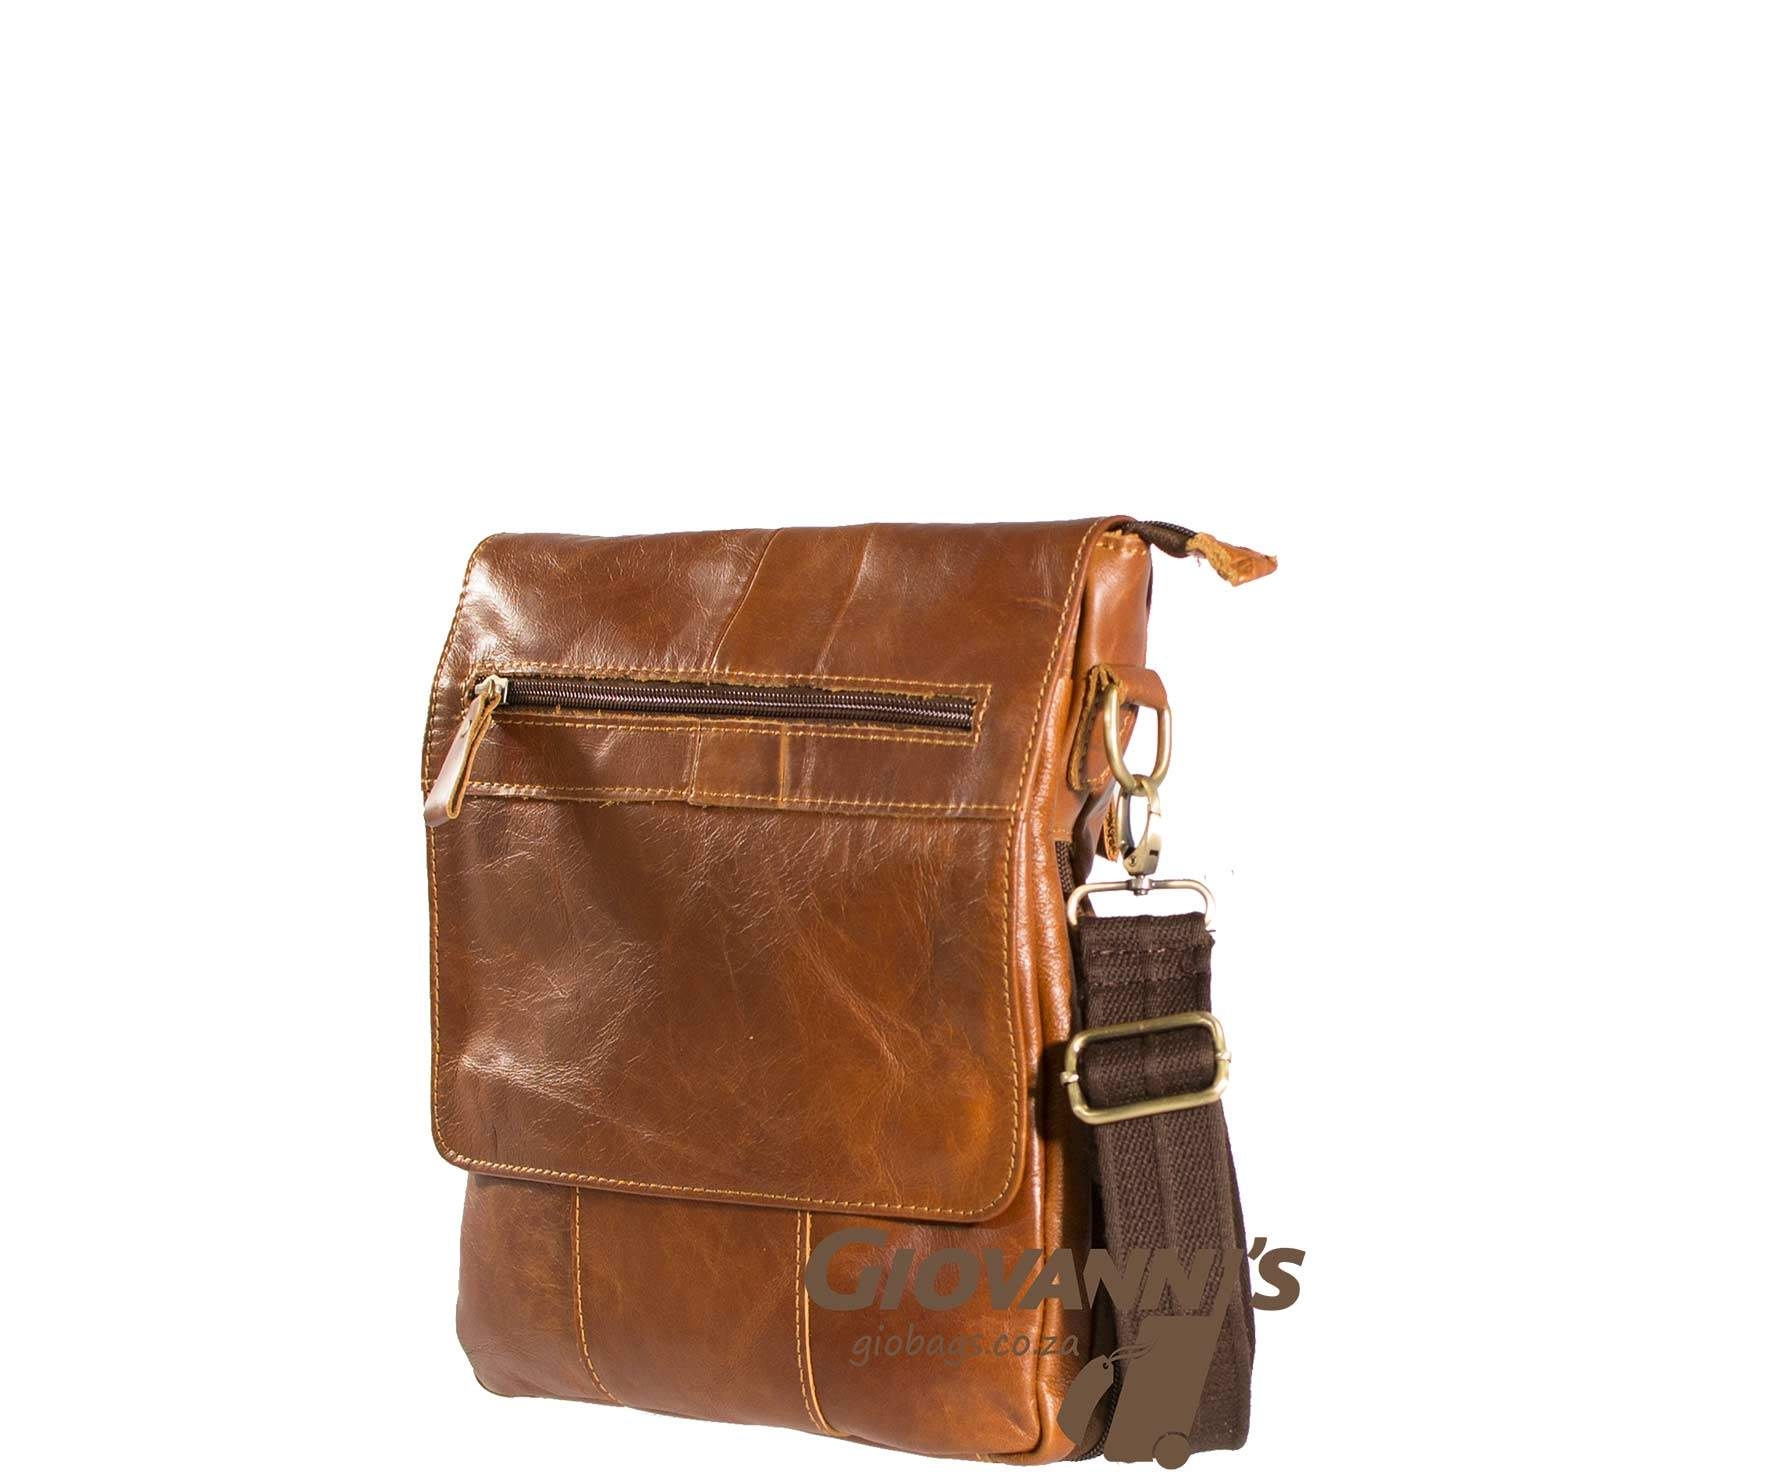 Giobags Gio Leather Flap Over Sling bag